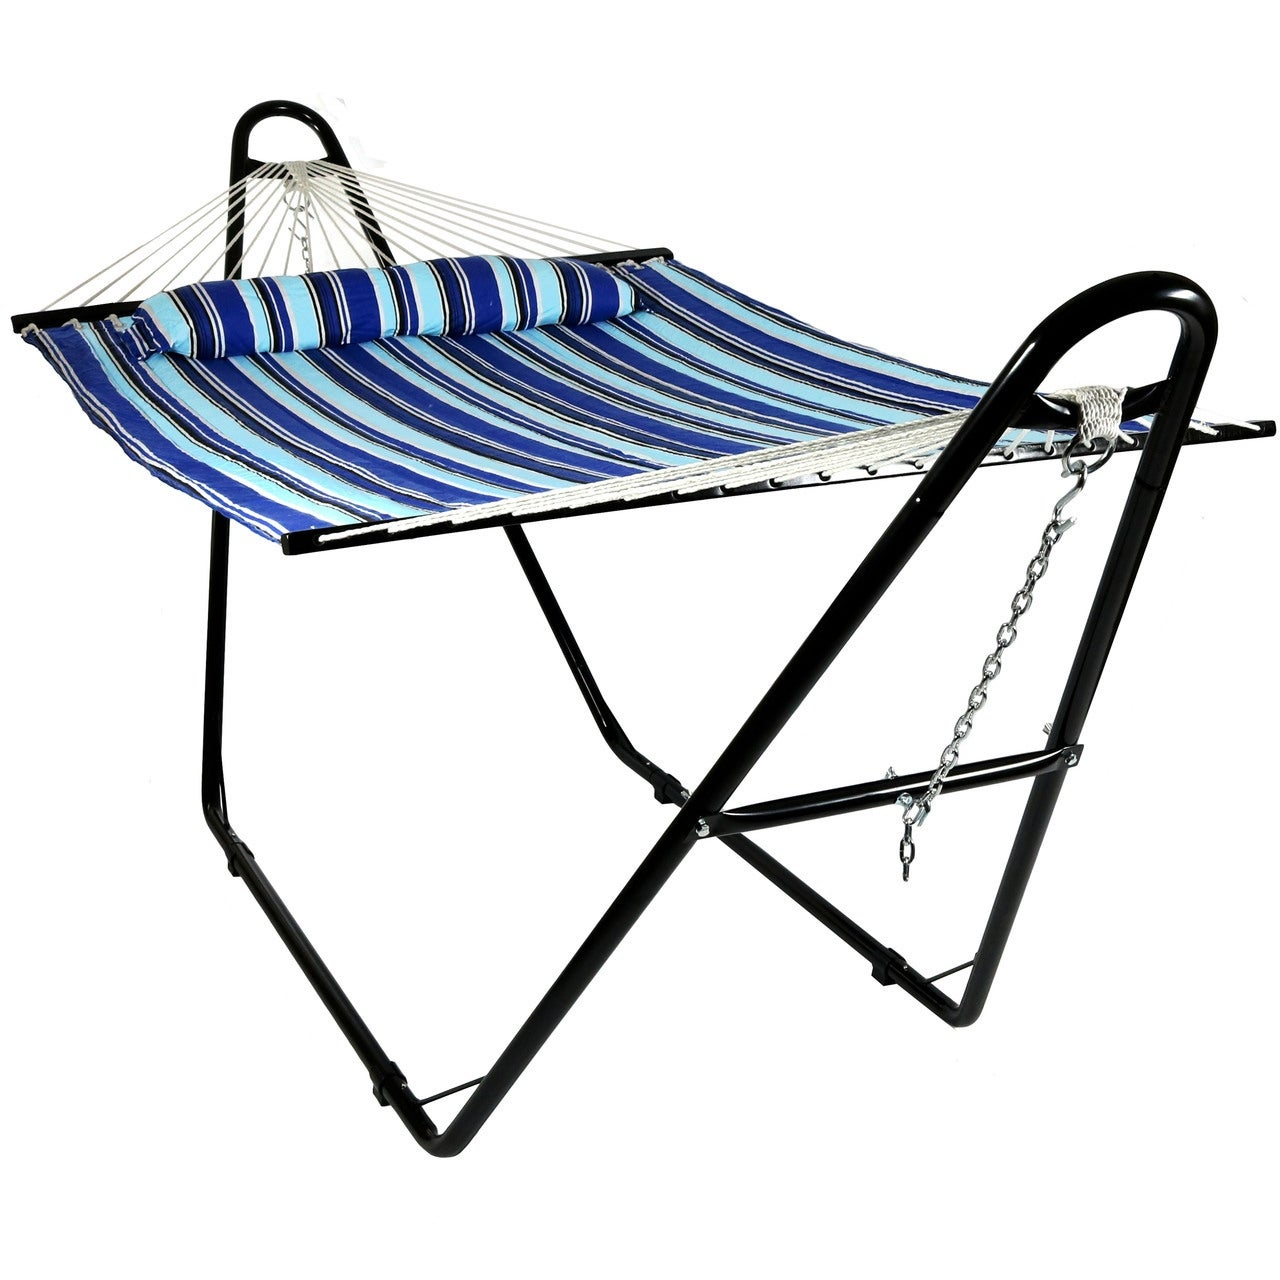 Sunnydaze Quilted Double Fabric 2-Person Hammock with Multi-Use Universal Stand - Thumbnail 9